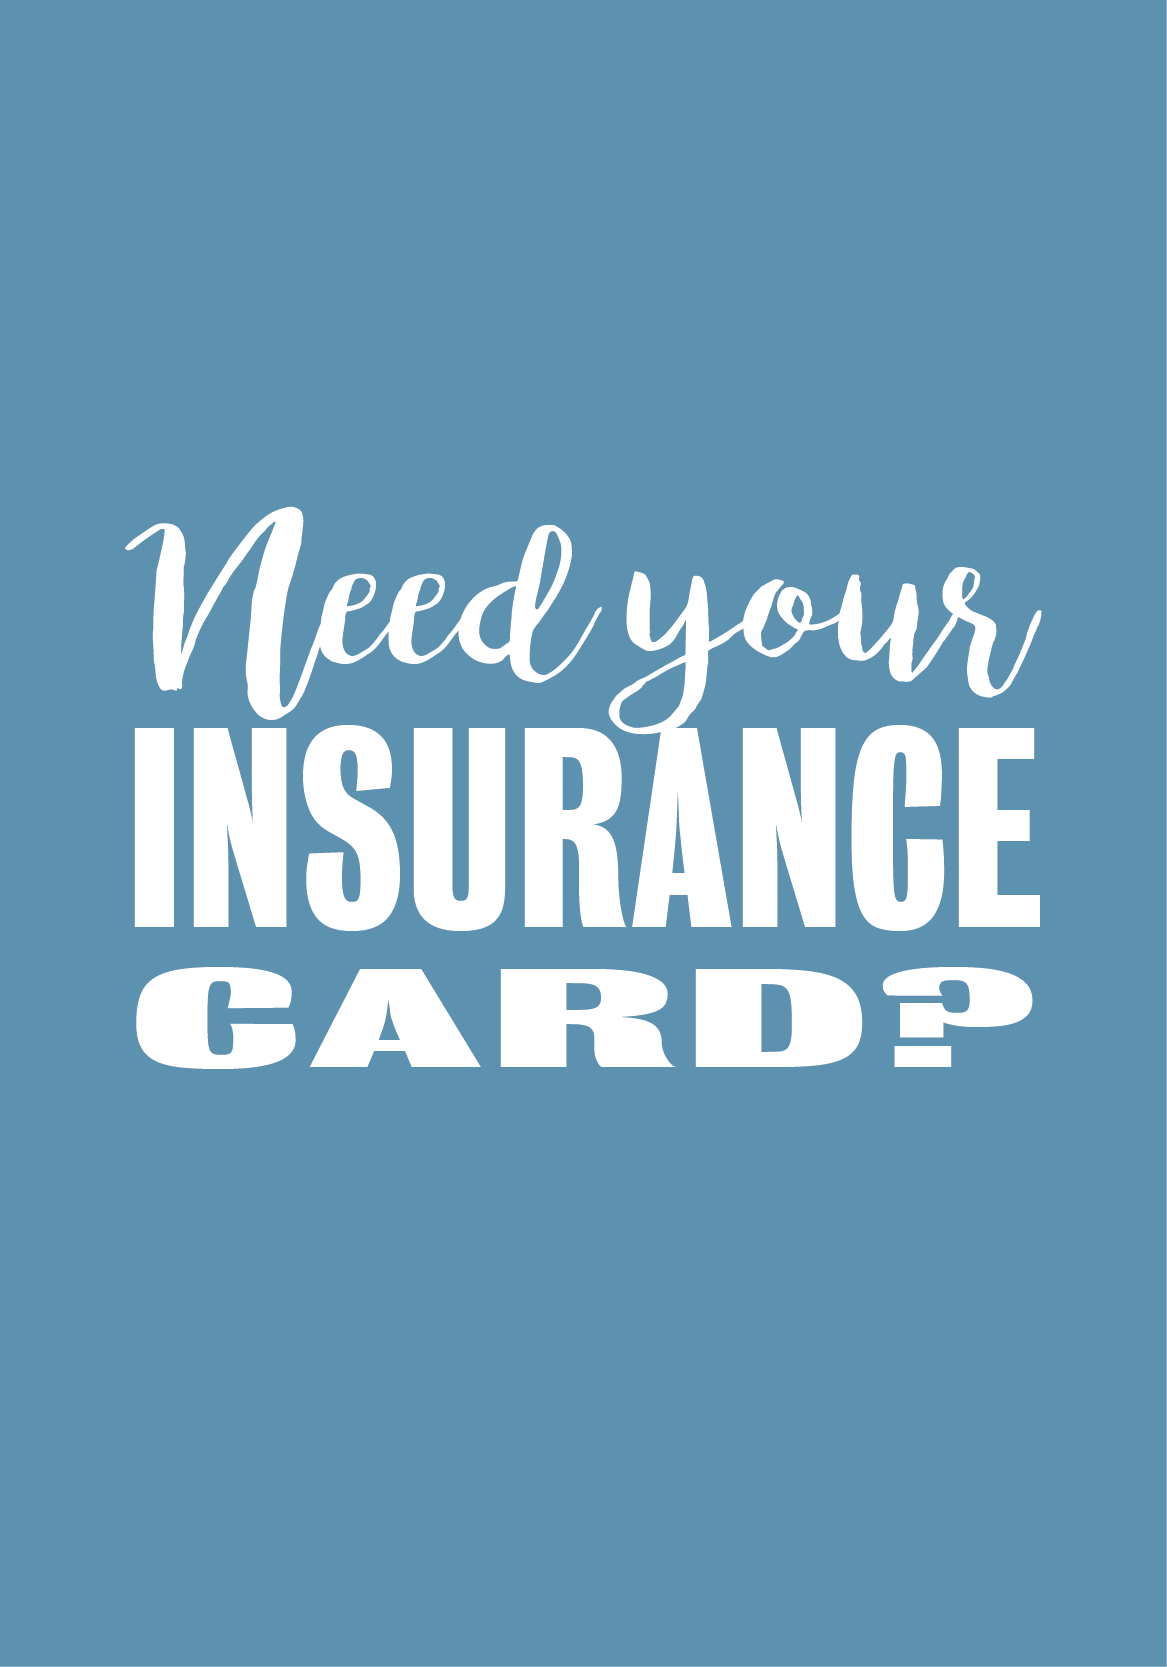 Need your insurance card before 9/15?